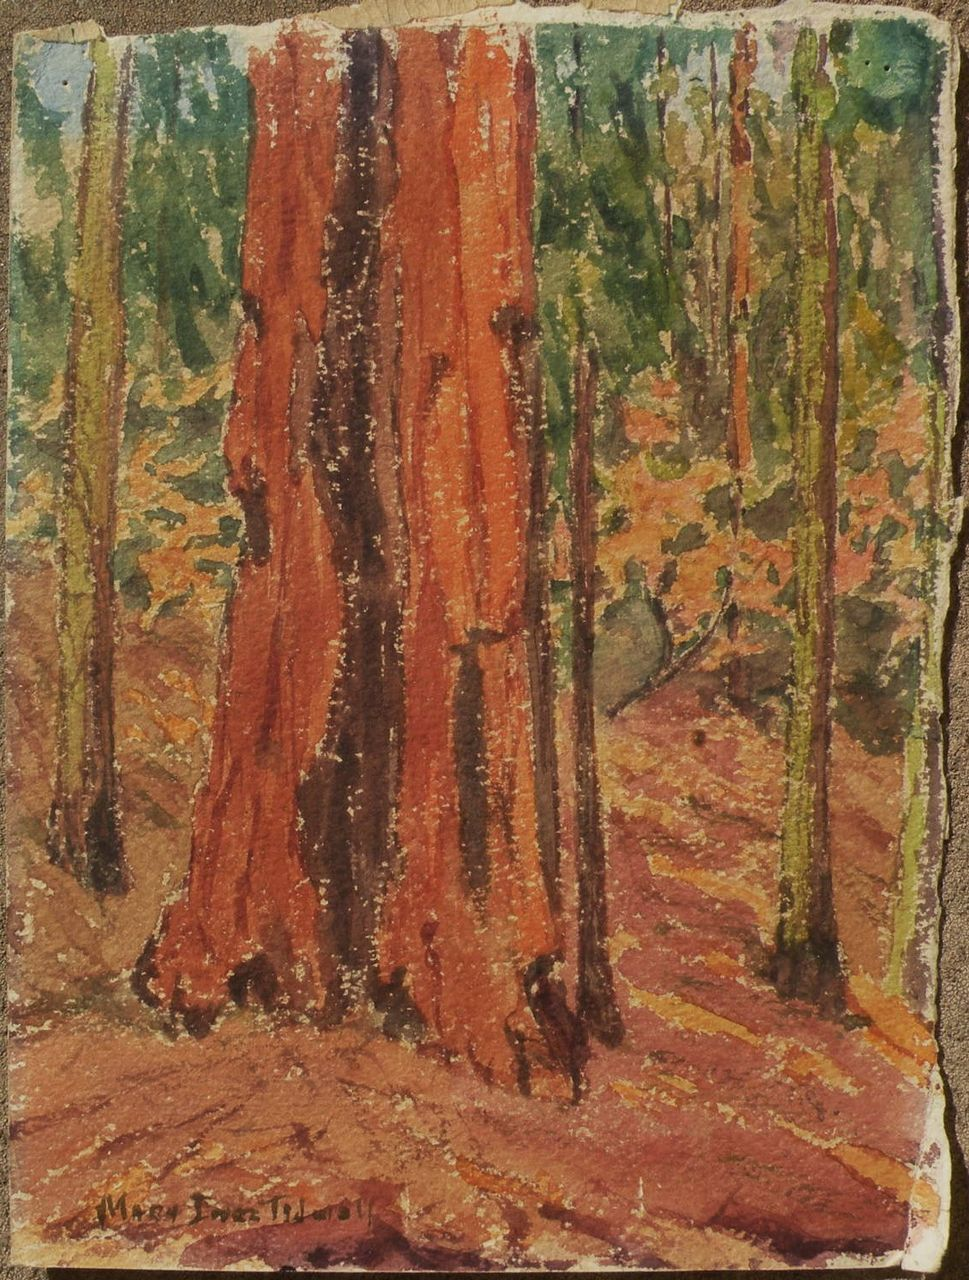 Circa 1935 watercolor painting of trunk of large forest tree signed Mary Inez Tidwell